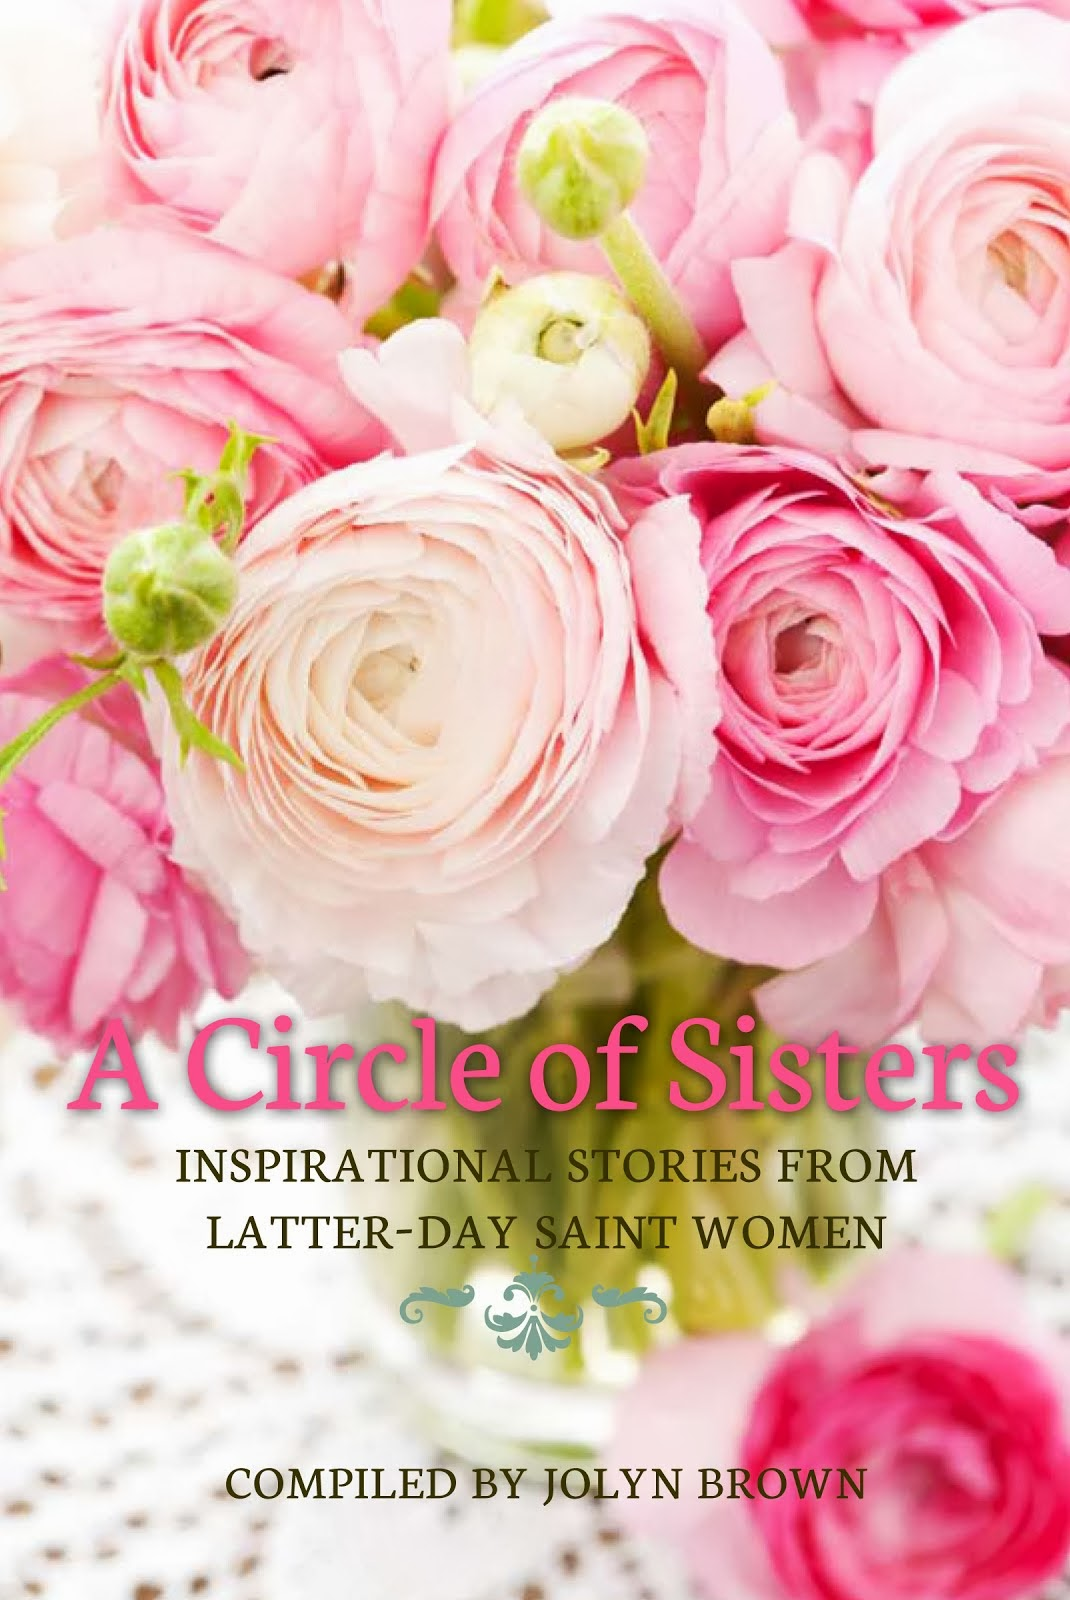 http://www.amazon.com/Circle-Sisters-Jolyn-Brown/dp/1599928825/ref=sr_1_2_title_1_pap?s=books&ie=UTF8&qid=1386181301&sr=1-2&keywords=a+circle+of+sisters